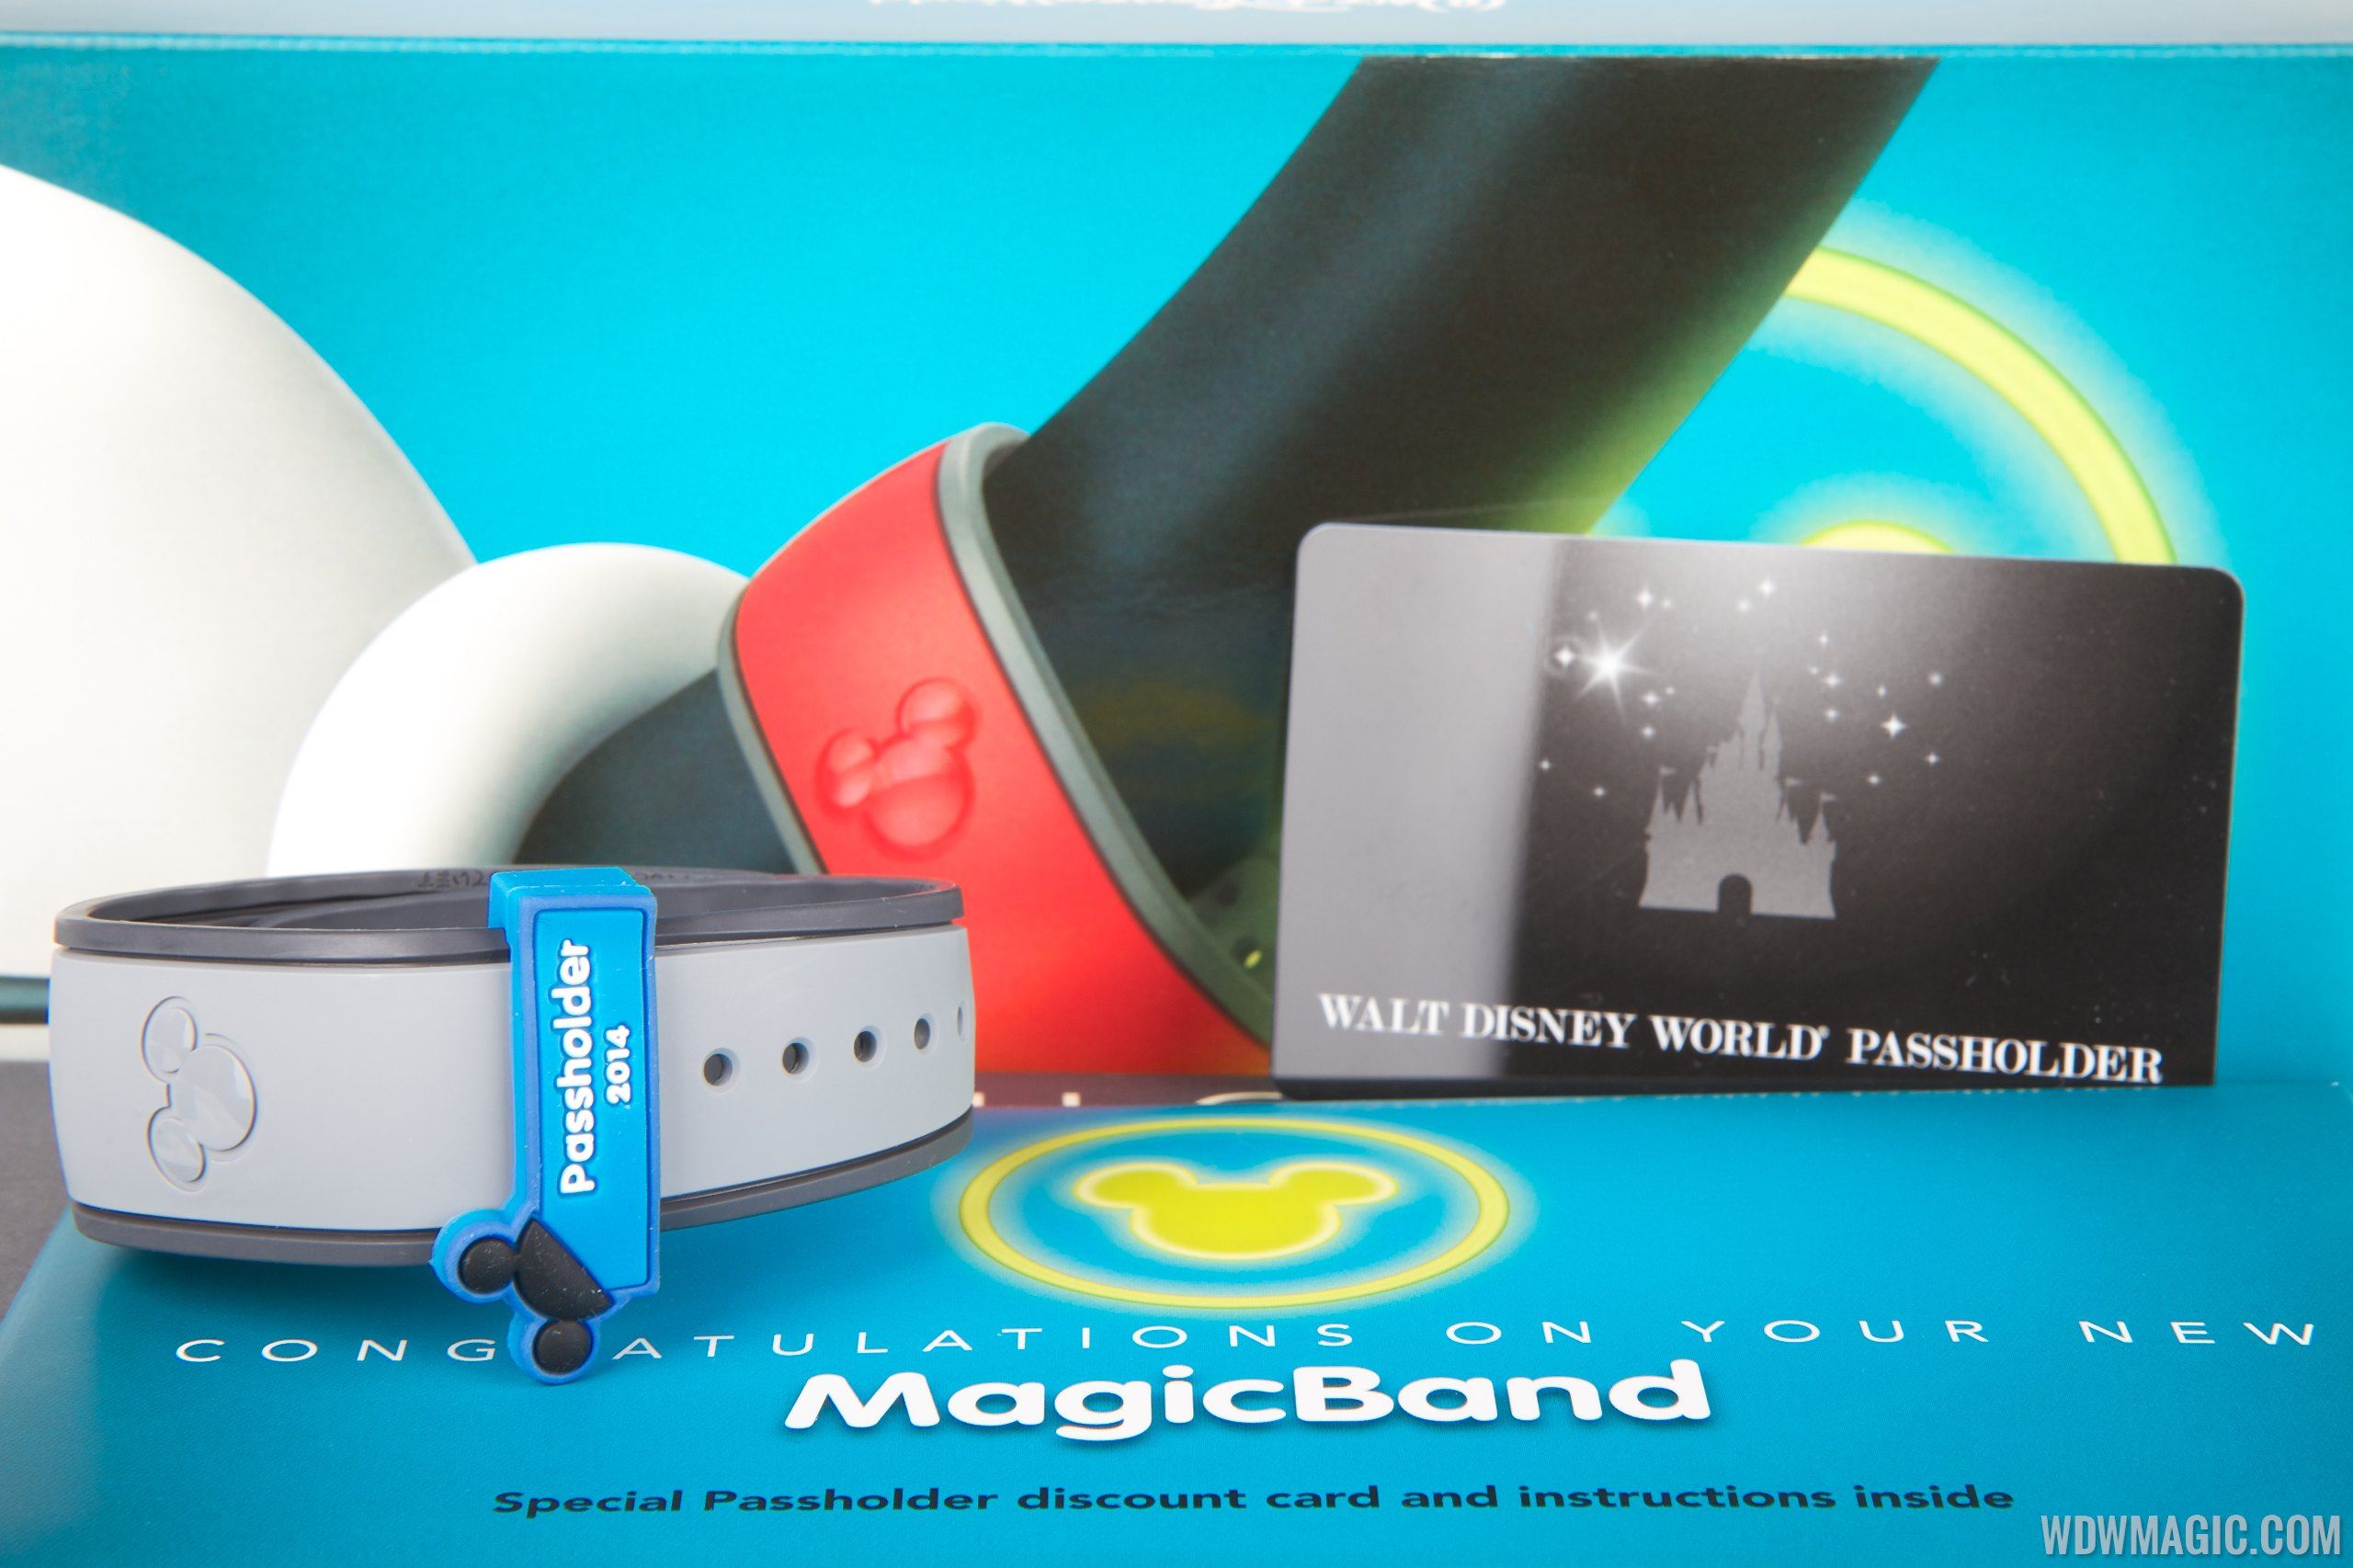 MagicBand passholder contents